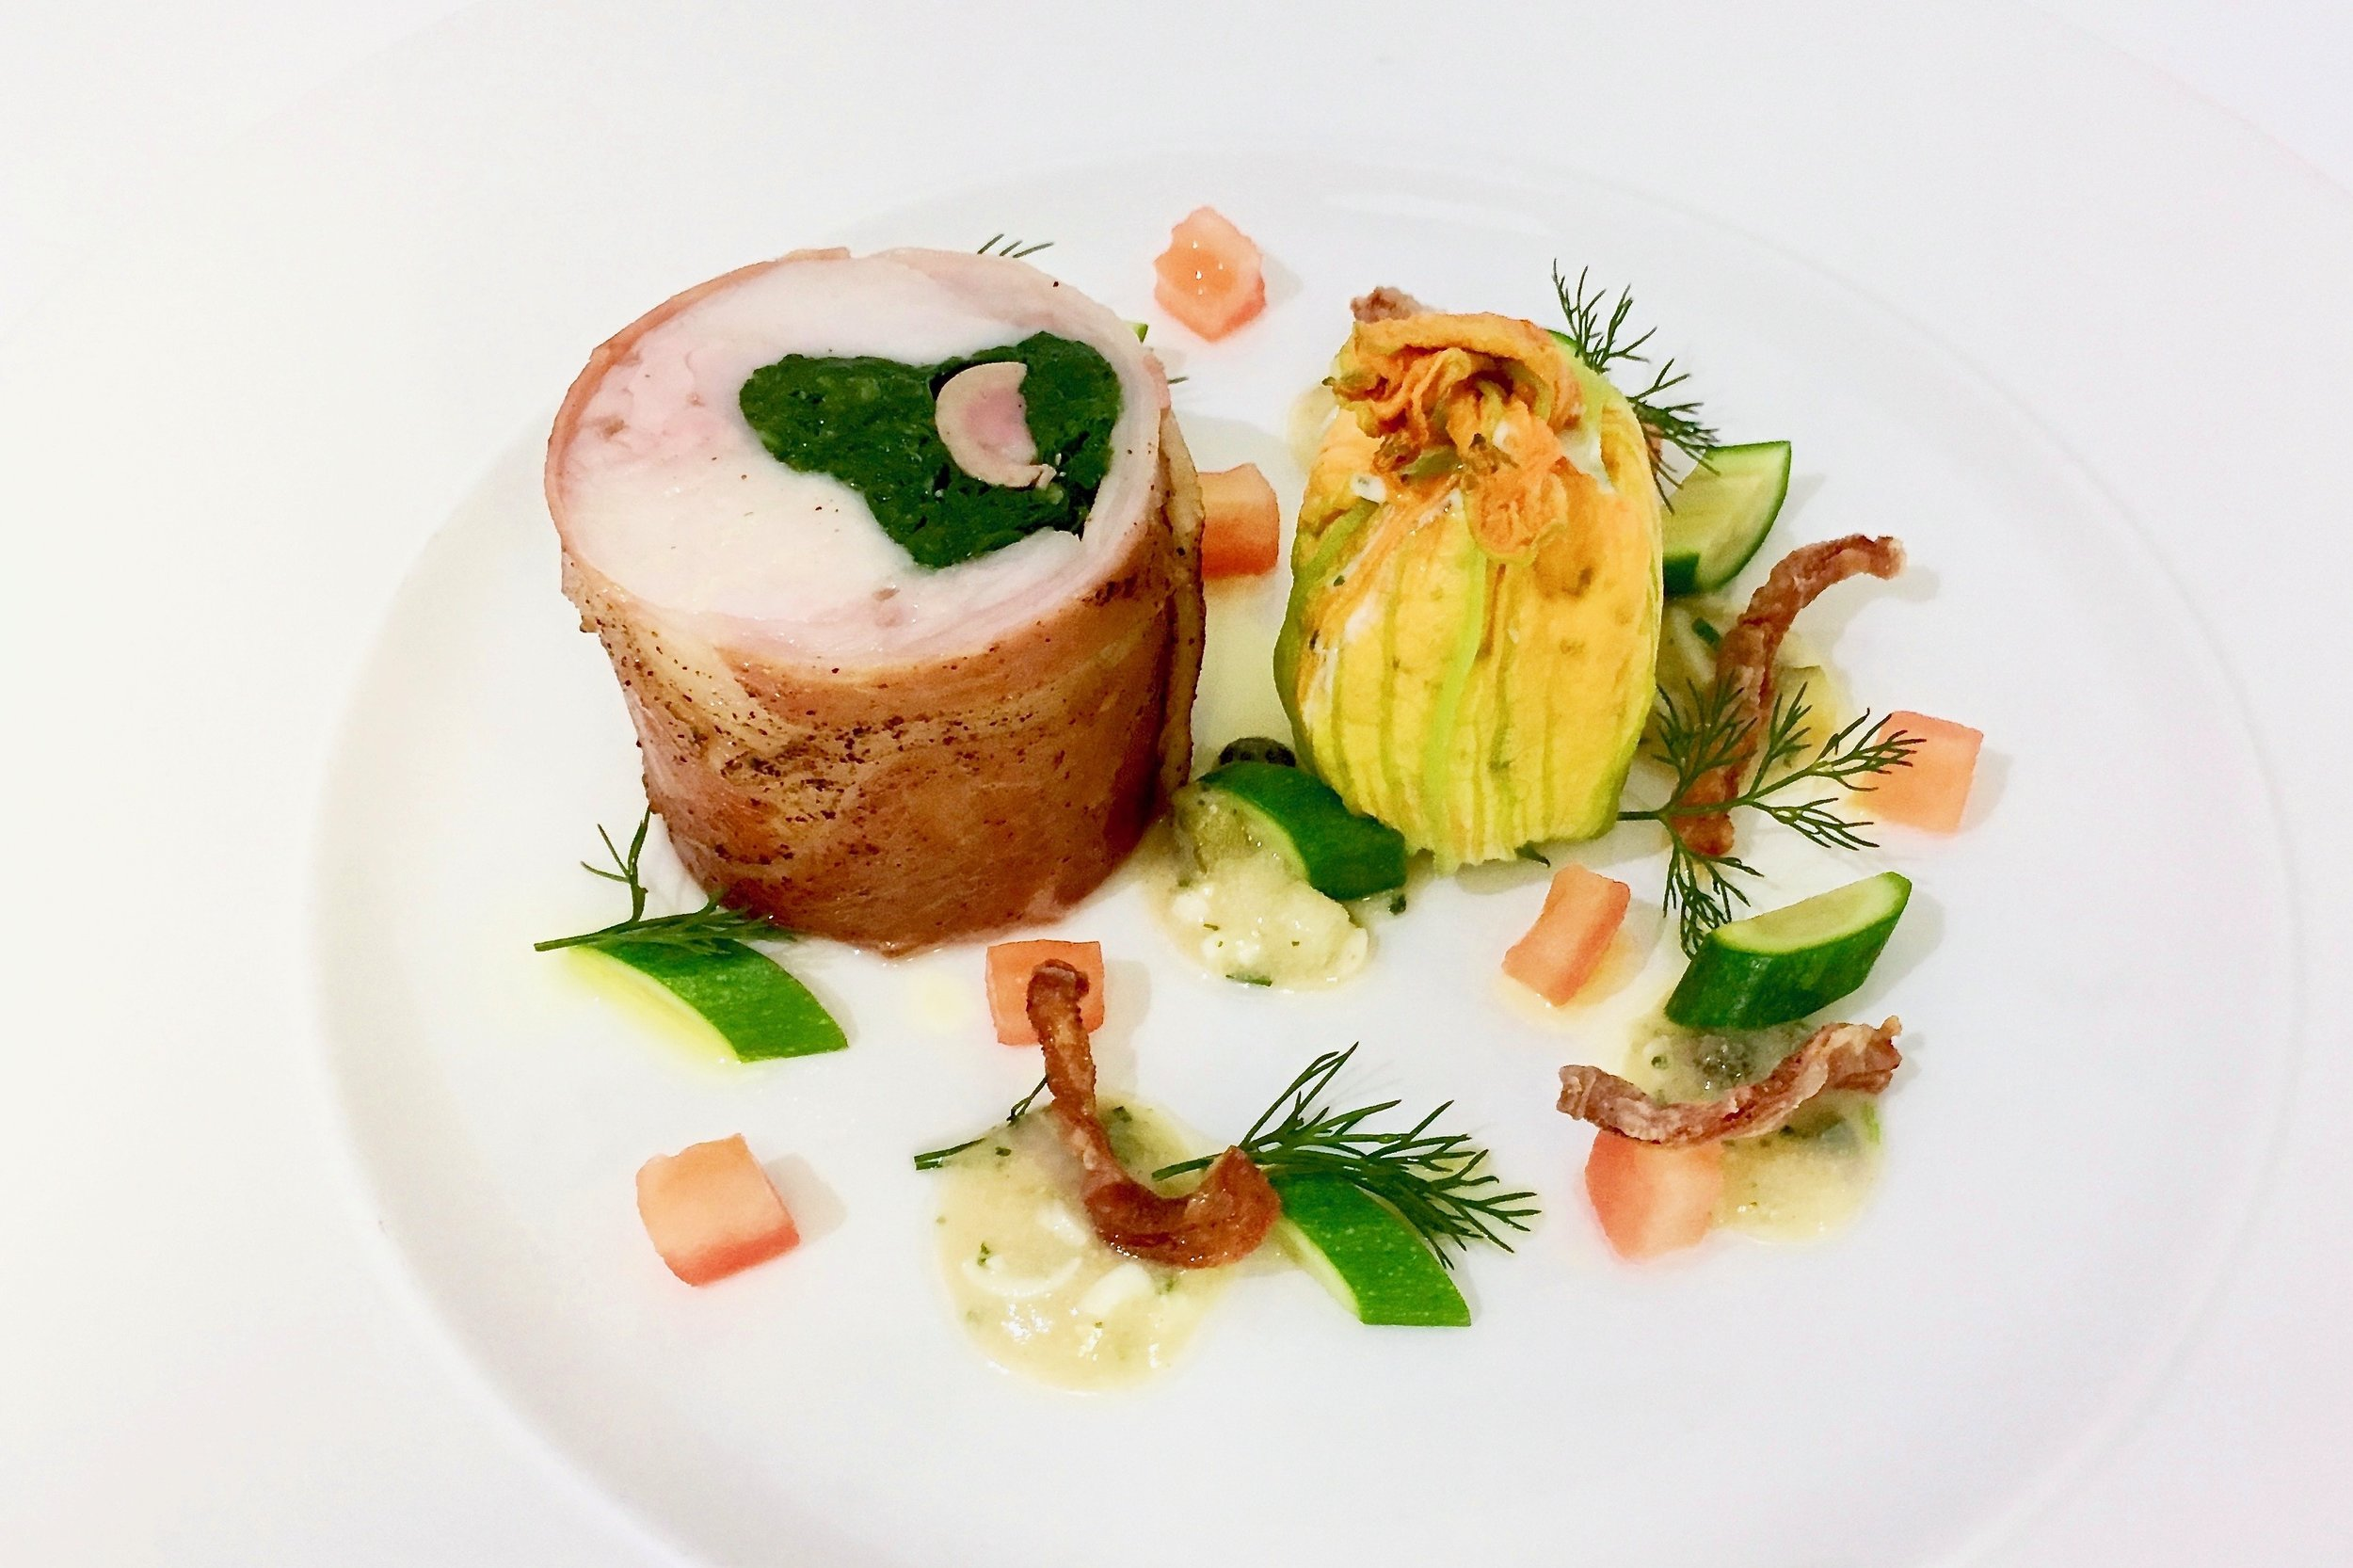 Stuffed saddle of rabbit with crispy belly, courgette flower with chicken mousse and ravigote sauce